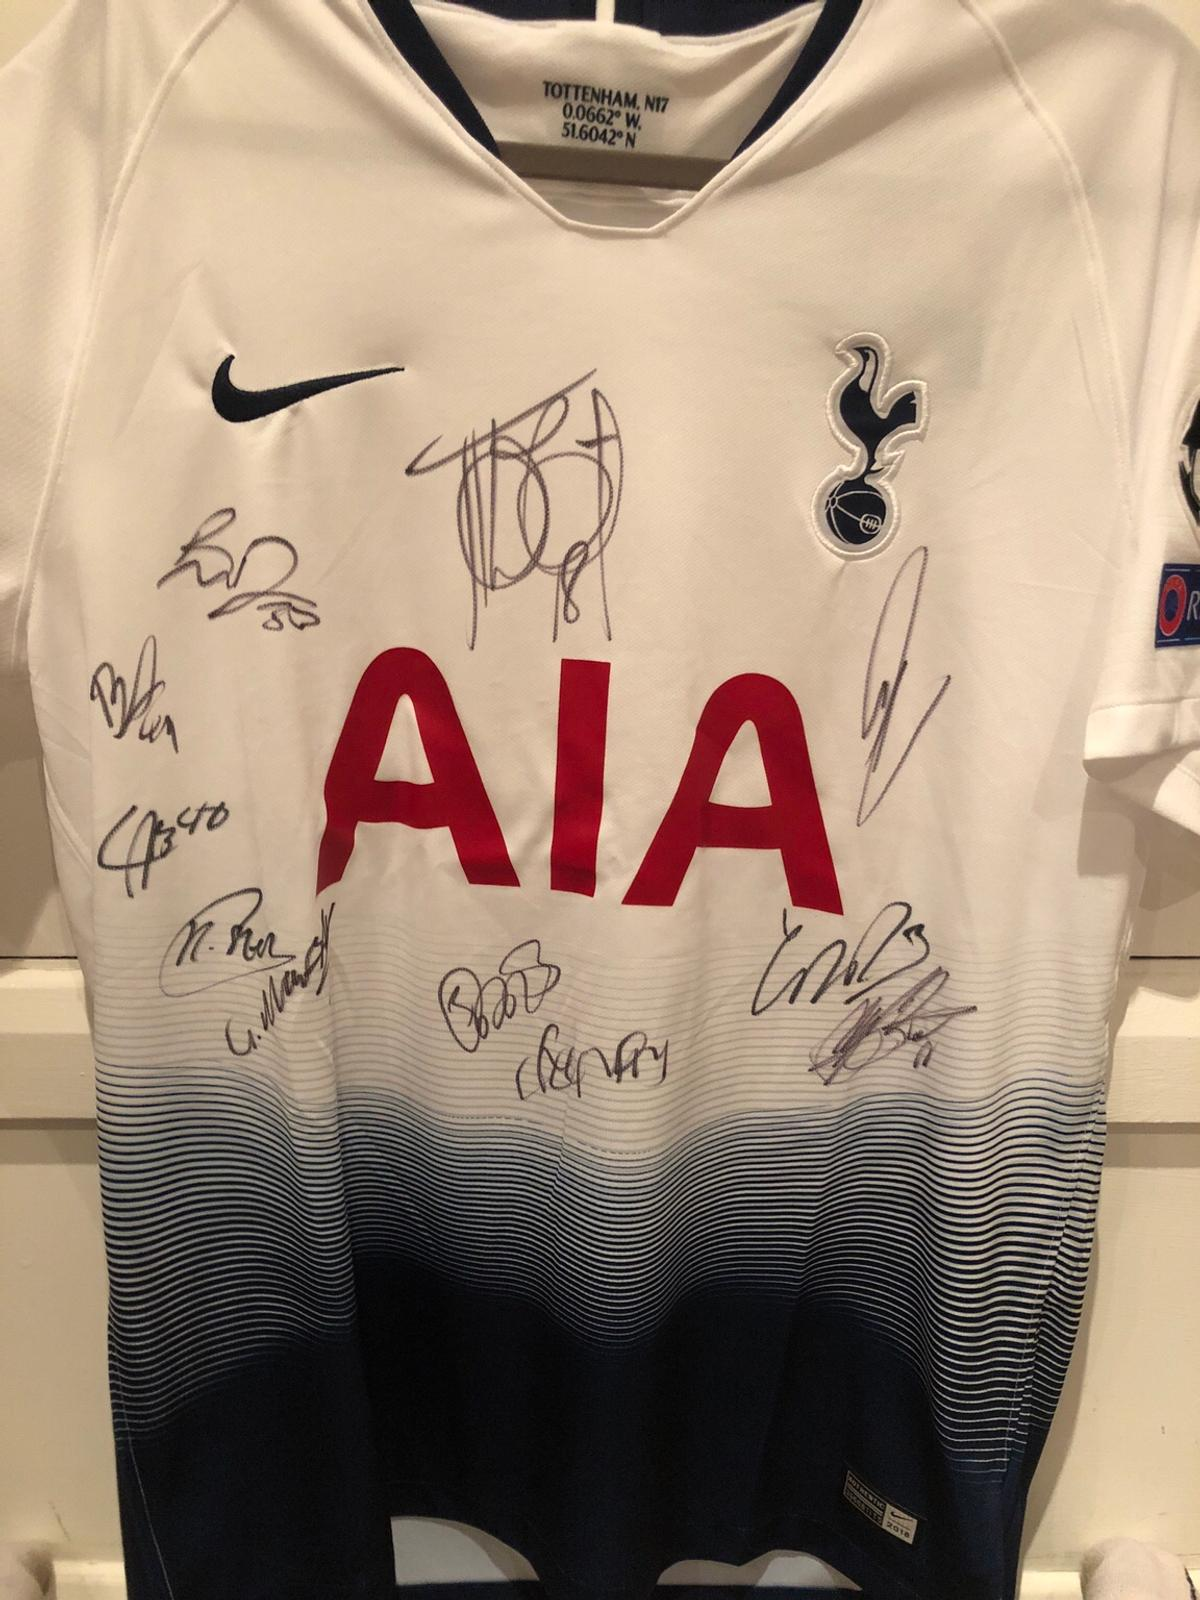 official photos 0f2cf 34d3f Signed 2018/19 Spurs home kit by whole squad